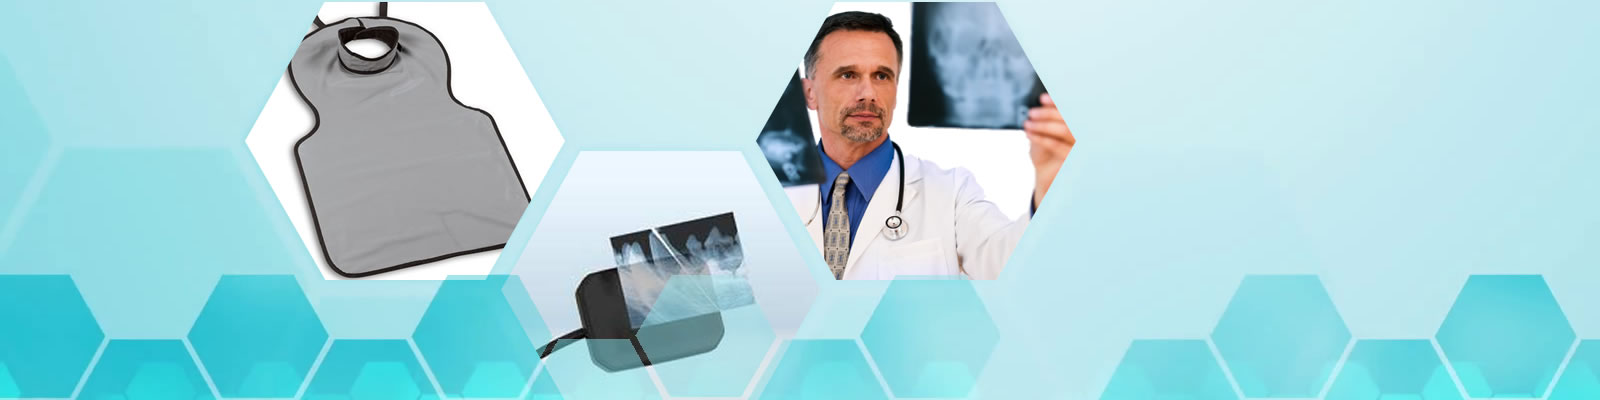 Advanced Images X-Ray Supplies and Equipment in Washington